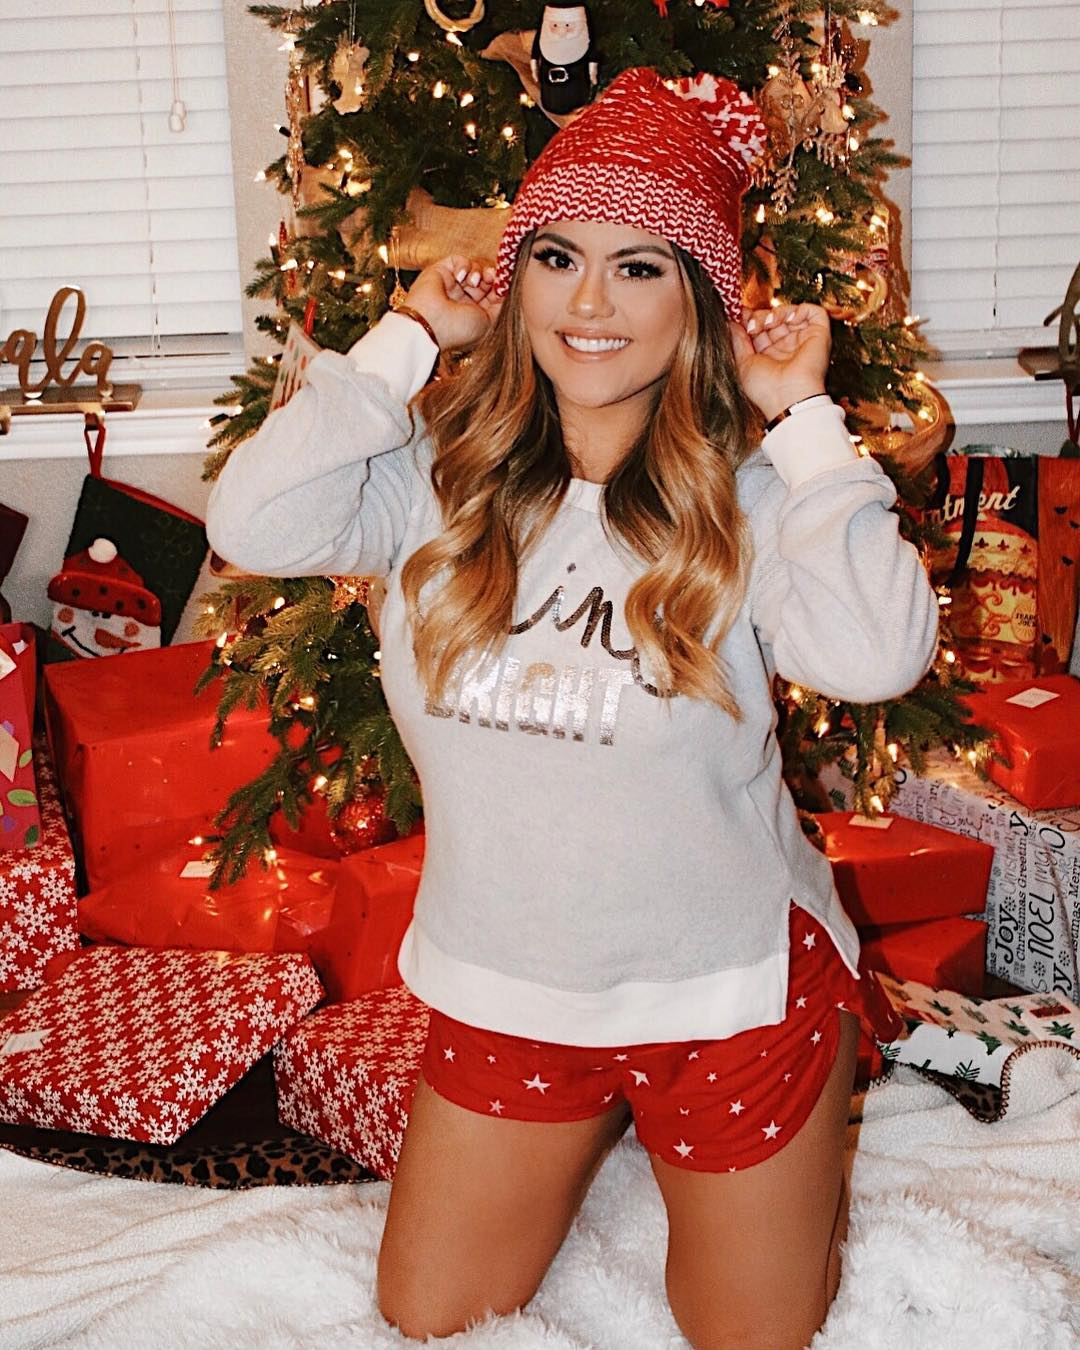 d4fe8a1661 ... Women s Shine Bright 4pc Pajama Set - Xhilaration White! see all your  loves · instagram photo by  morganfambro